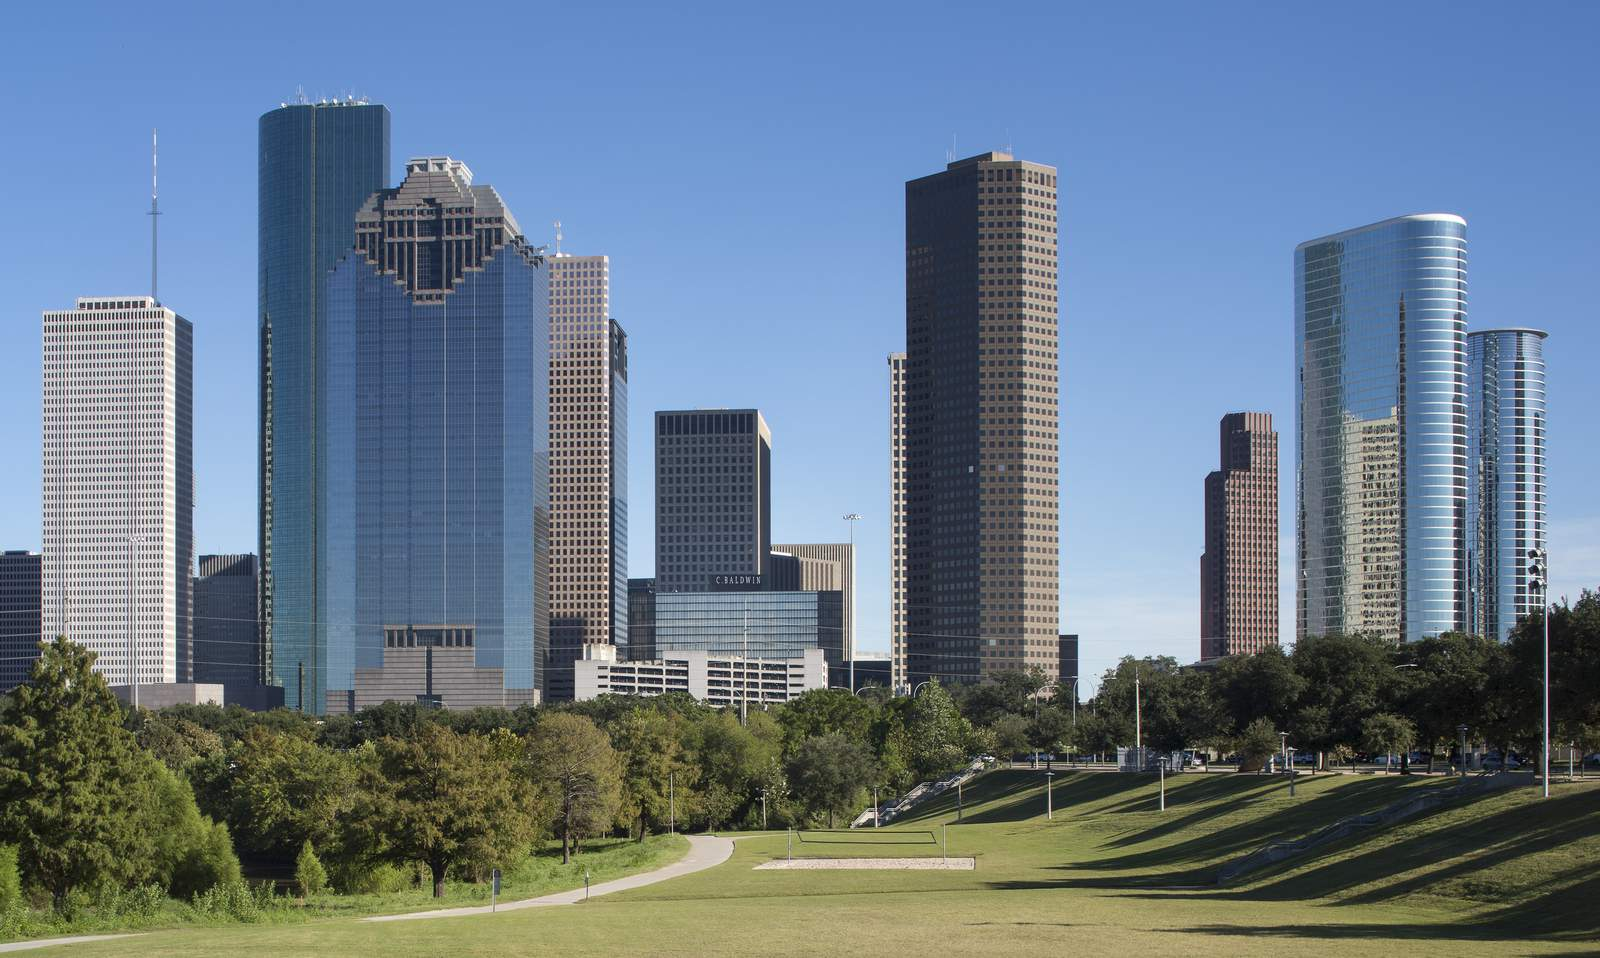 10 things Houstonians care most about in 2020, according to the latest Kinder survey by Rice University